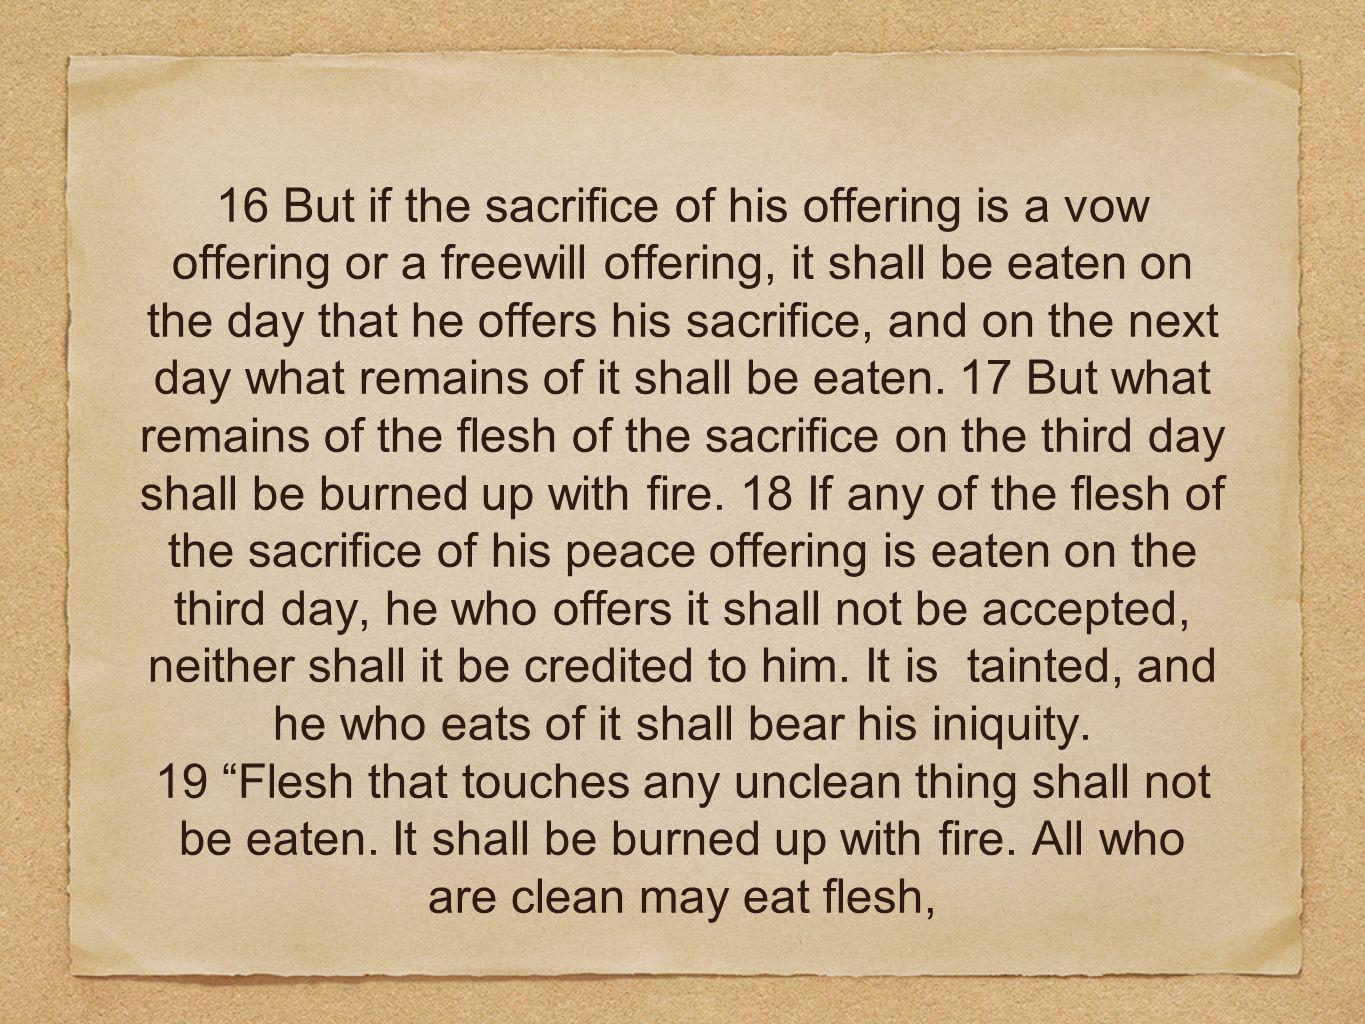 16 But if the sacrifice of his offering is a vow offering or a freewill offering, it shall be eaten on the day that he offers his sacrifice, and on the next day what remains of it shall be eaten. 17 But what remains of the flesh of the sacrifice on the third day shall be burned up with fire. 18 If any of the flesh of the sacrifice of his peace offering is eaten on the third day, he who offers it shall not be accepted, neither shall it be credited to him. It is tainted, and he who eats of it shall bear his iniquity.